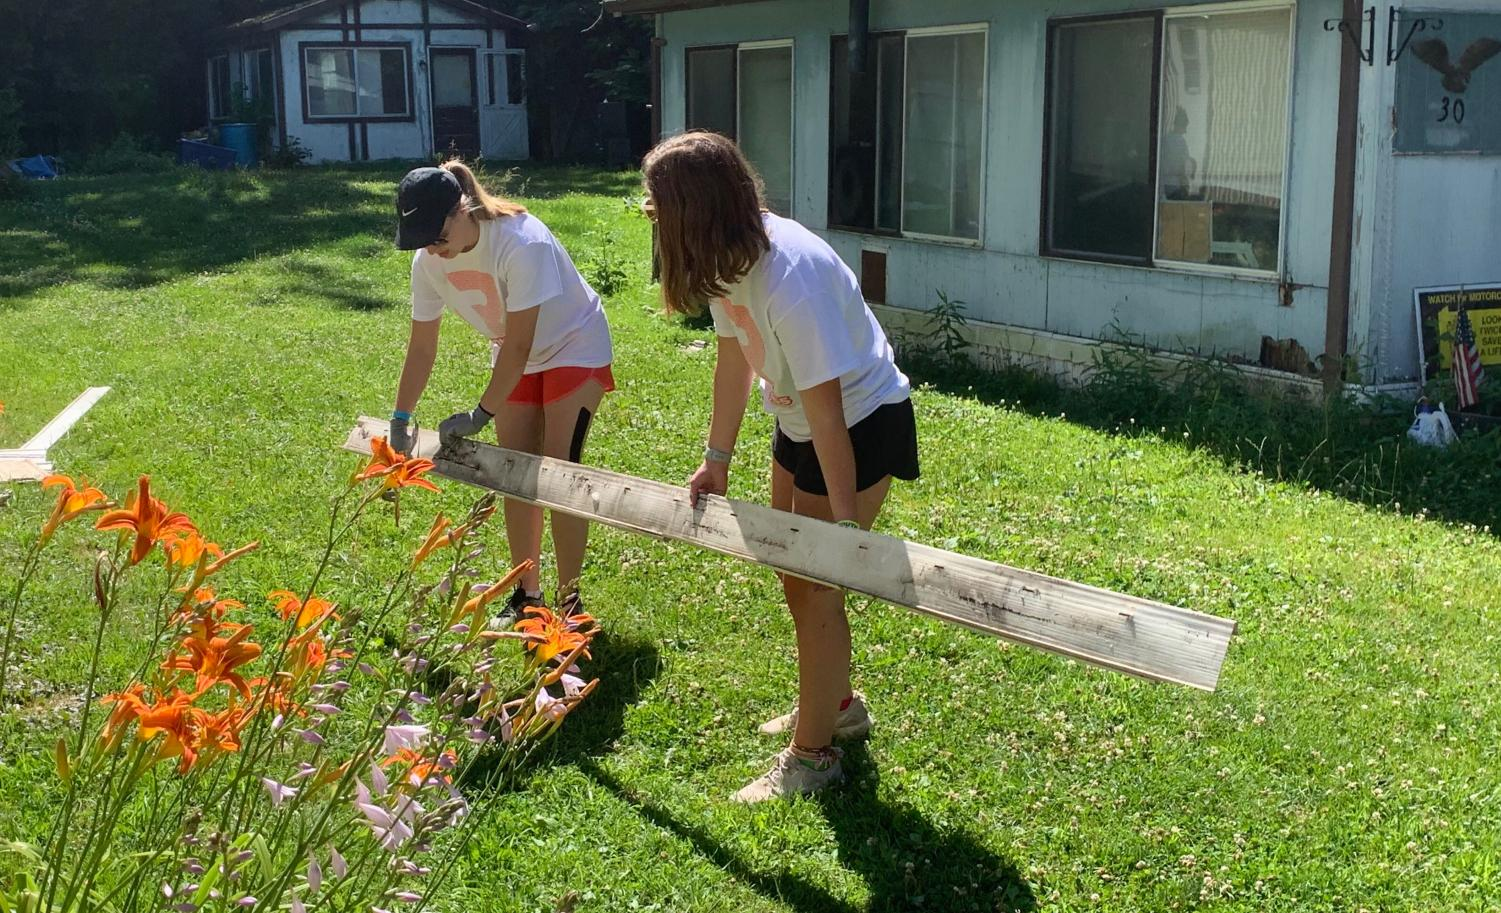 Junior Erica Michel and another volunteer are working hard at building houses for the people in Erie, Pennsylvania.